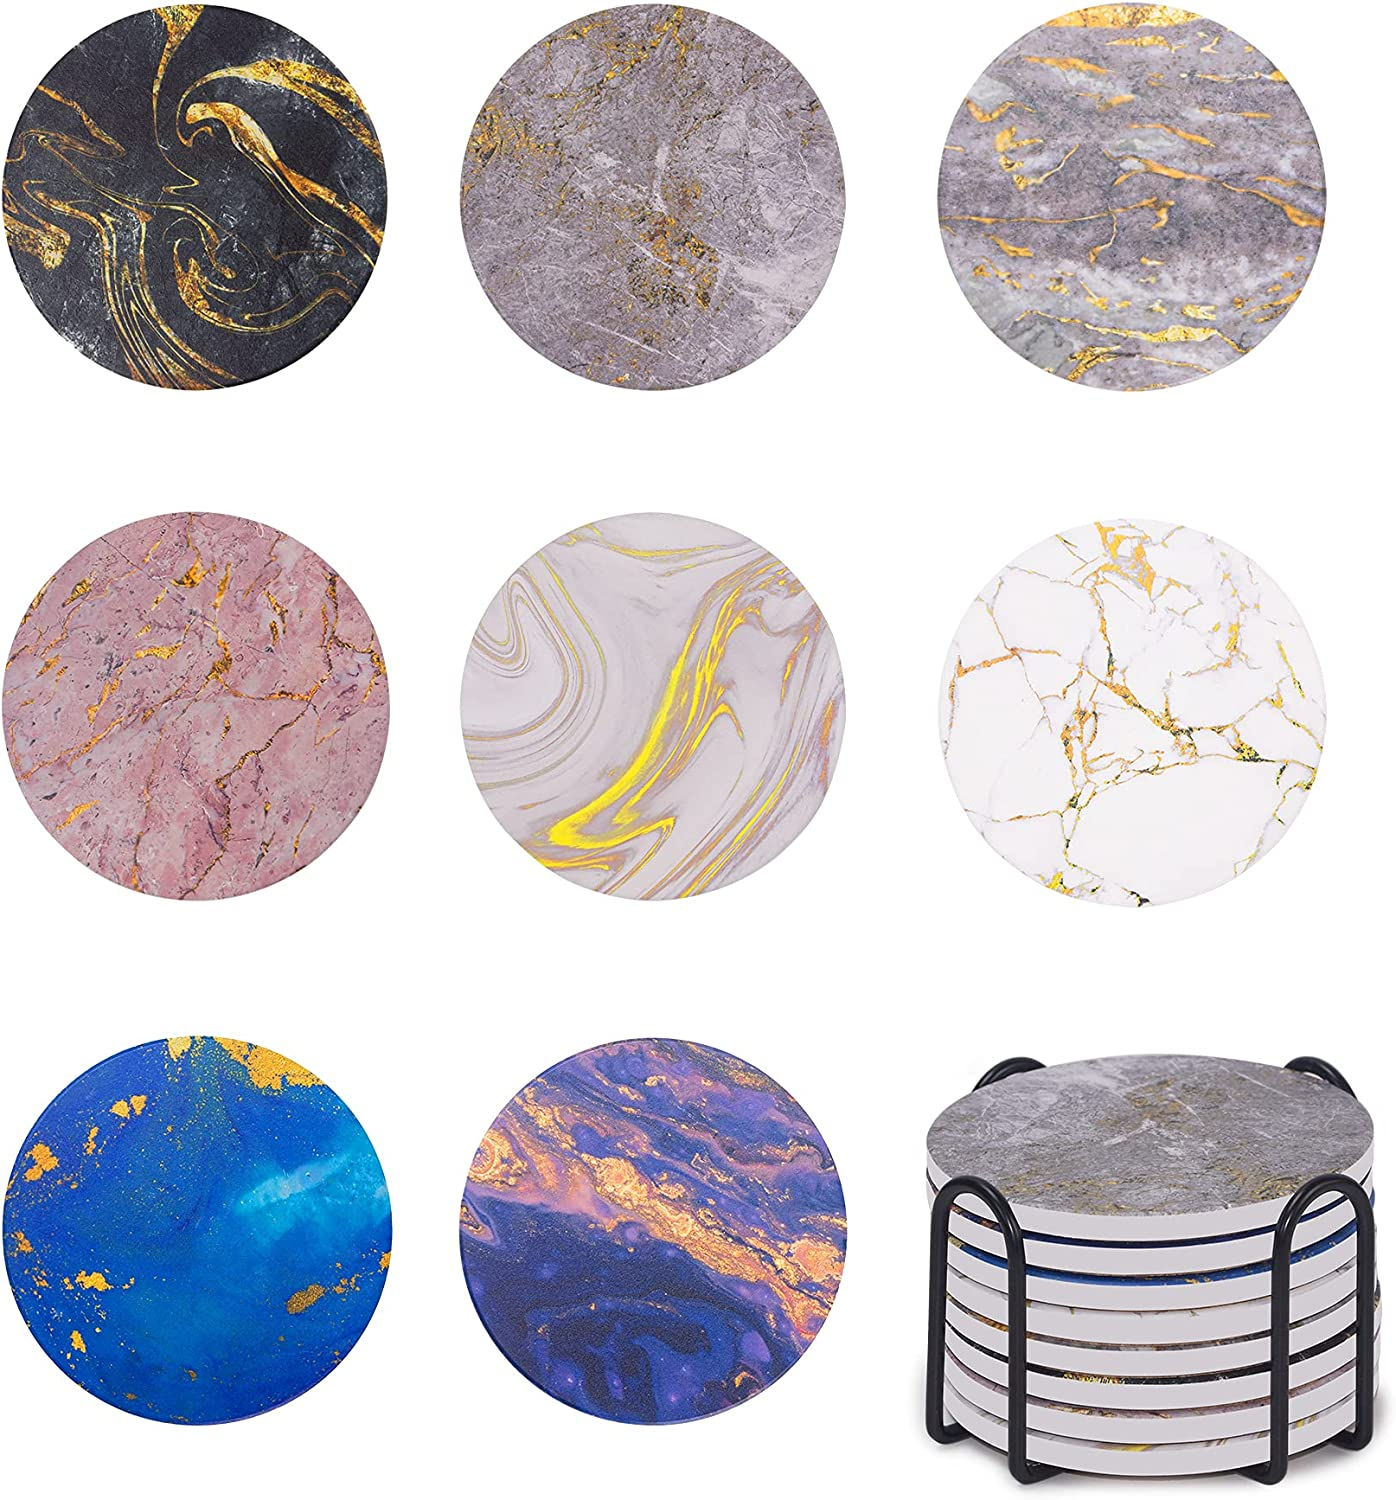 Kendiis Coasters 8pcs Ceramic Marble Style Absorbent Drink Coasters with Cork Base, Stone Coasters, Housewarming Hostess Gifts for New Home, Christmas, Wedding Registry, Living Room Decorations